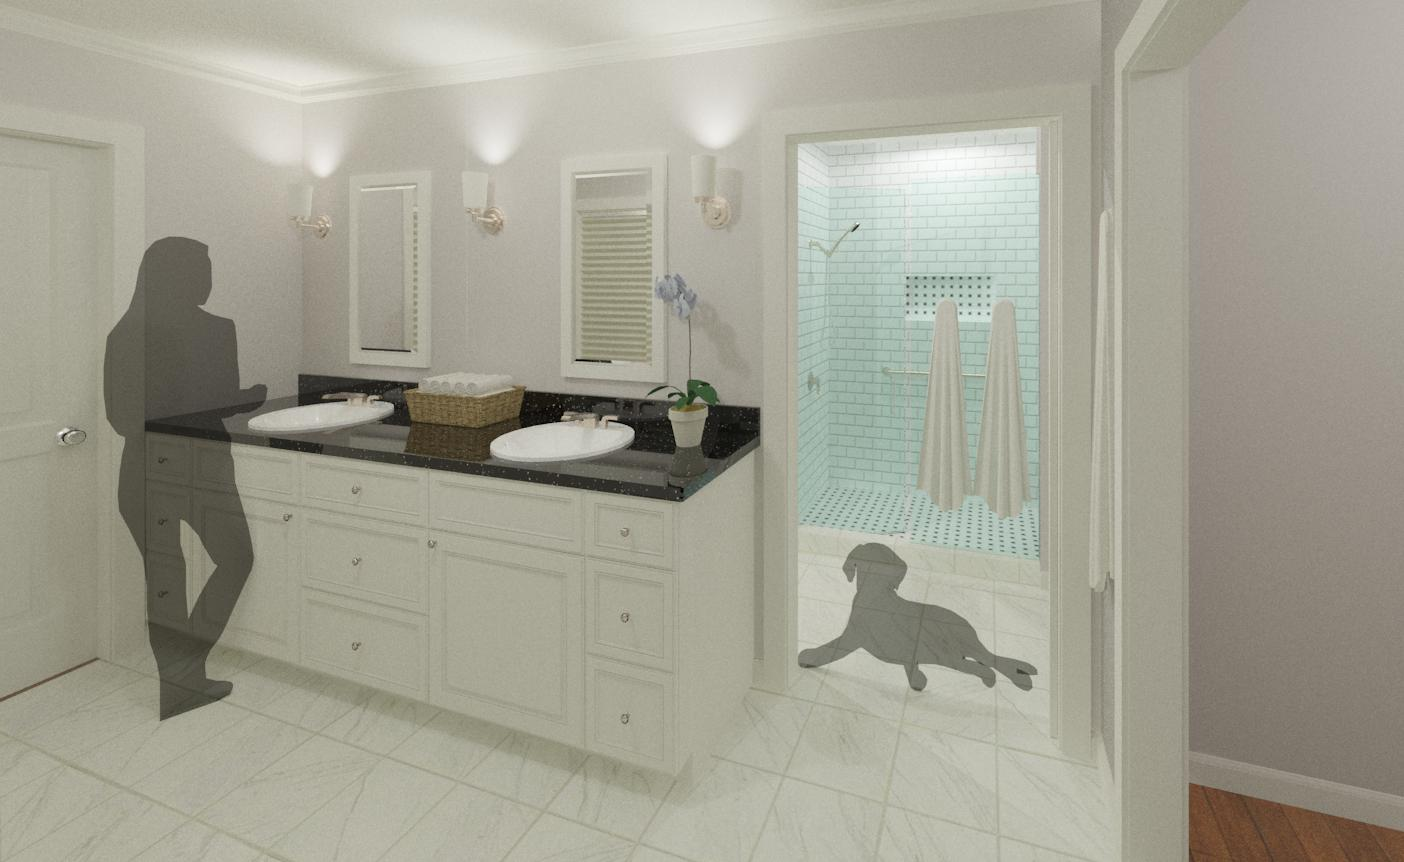 Bathroom Remodel for the Thompsons - Hatchett Design/Remodel on beach bathroom paint, beach bathroom shower, beach bathroom design ideas, beach bathroom decor, beach bathroom makeover, beach master bathroom ideas, beach bathroom decorating, beach commercial, beach bathroom floor, beach bathroom sink, beach bathroom tile, beach bathroom storage, beach bathroom house, beach bathroom remodeling ideas, beach bathroom light, beach bathroom painting, beach bathroom color schemes, beach bathroom art, beach designs for bathrooms, beach home bathroom,